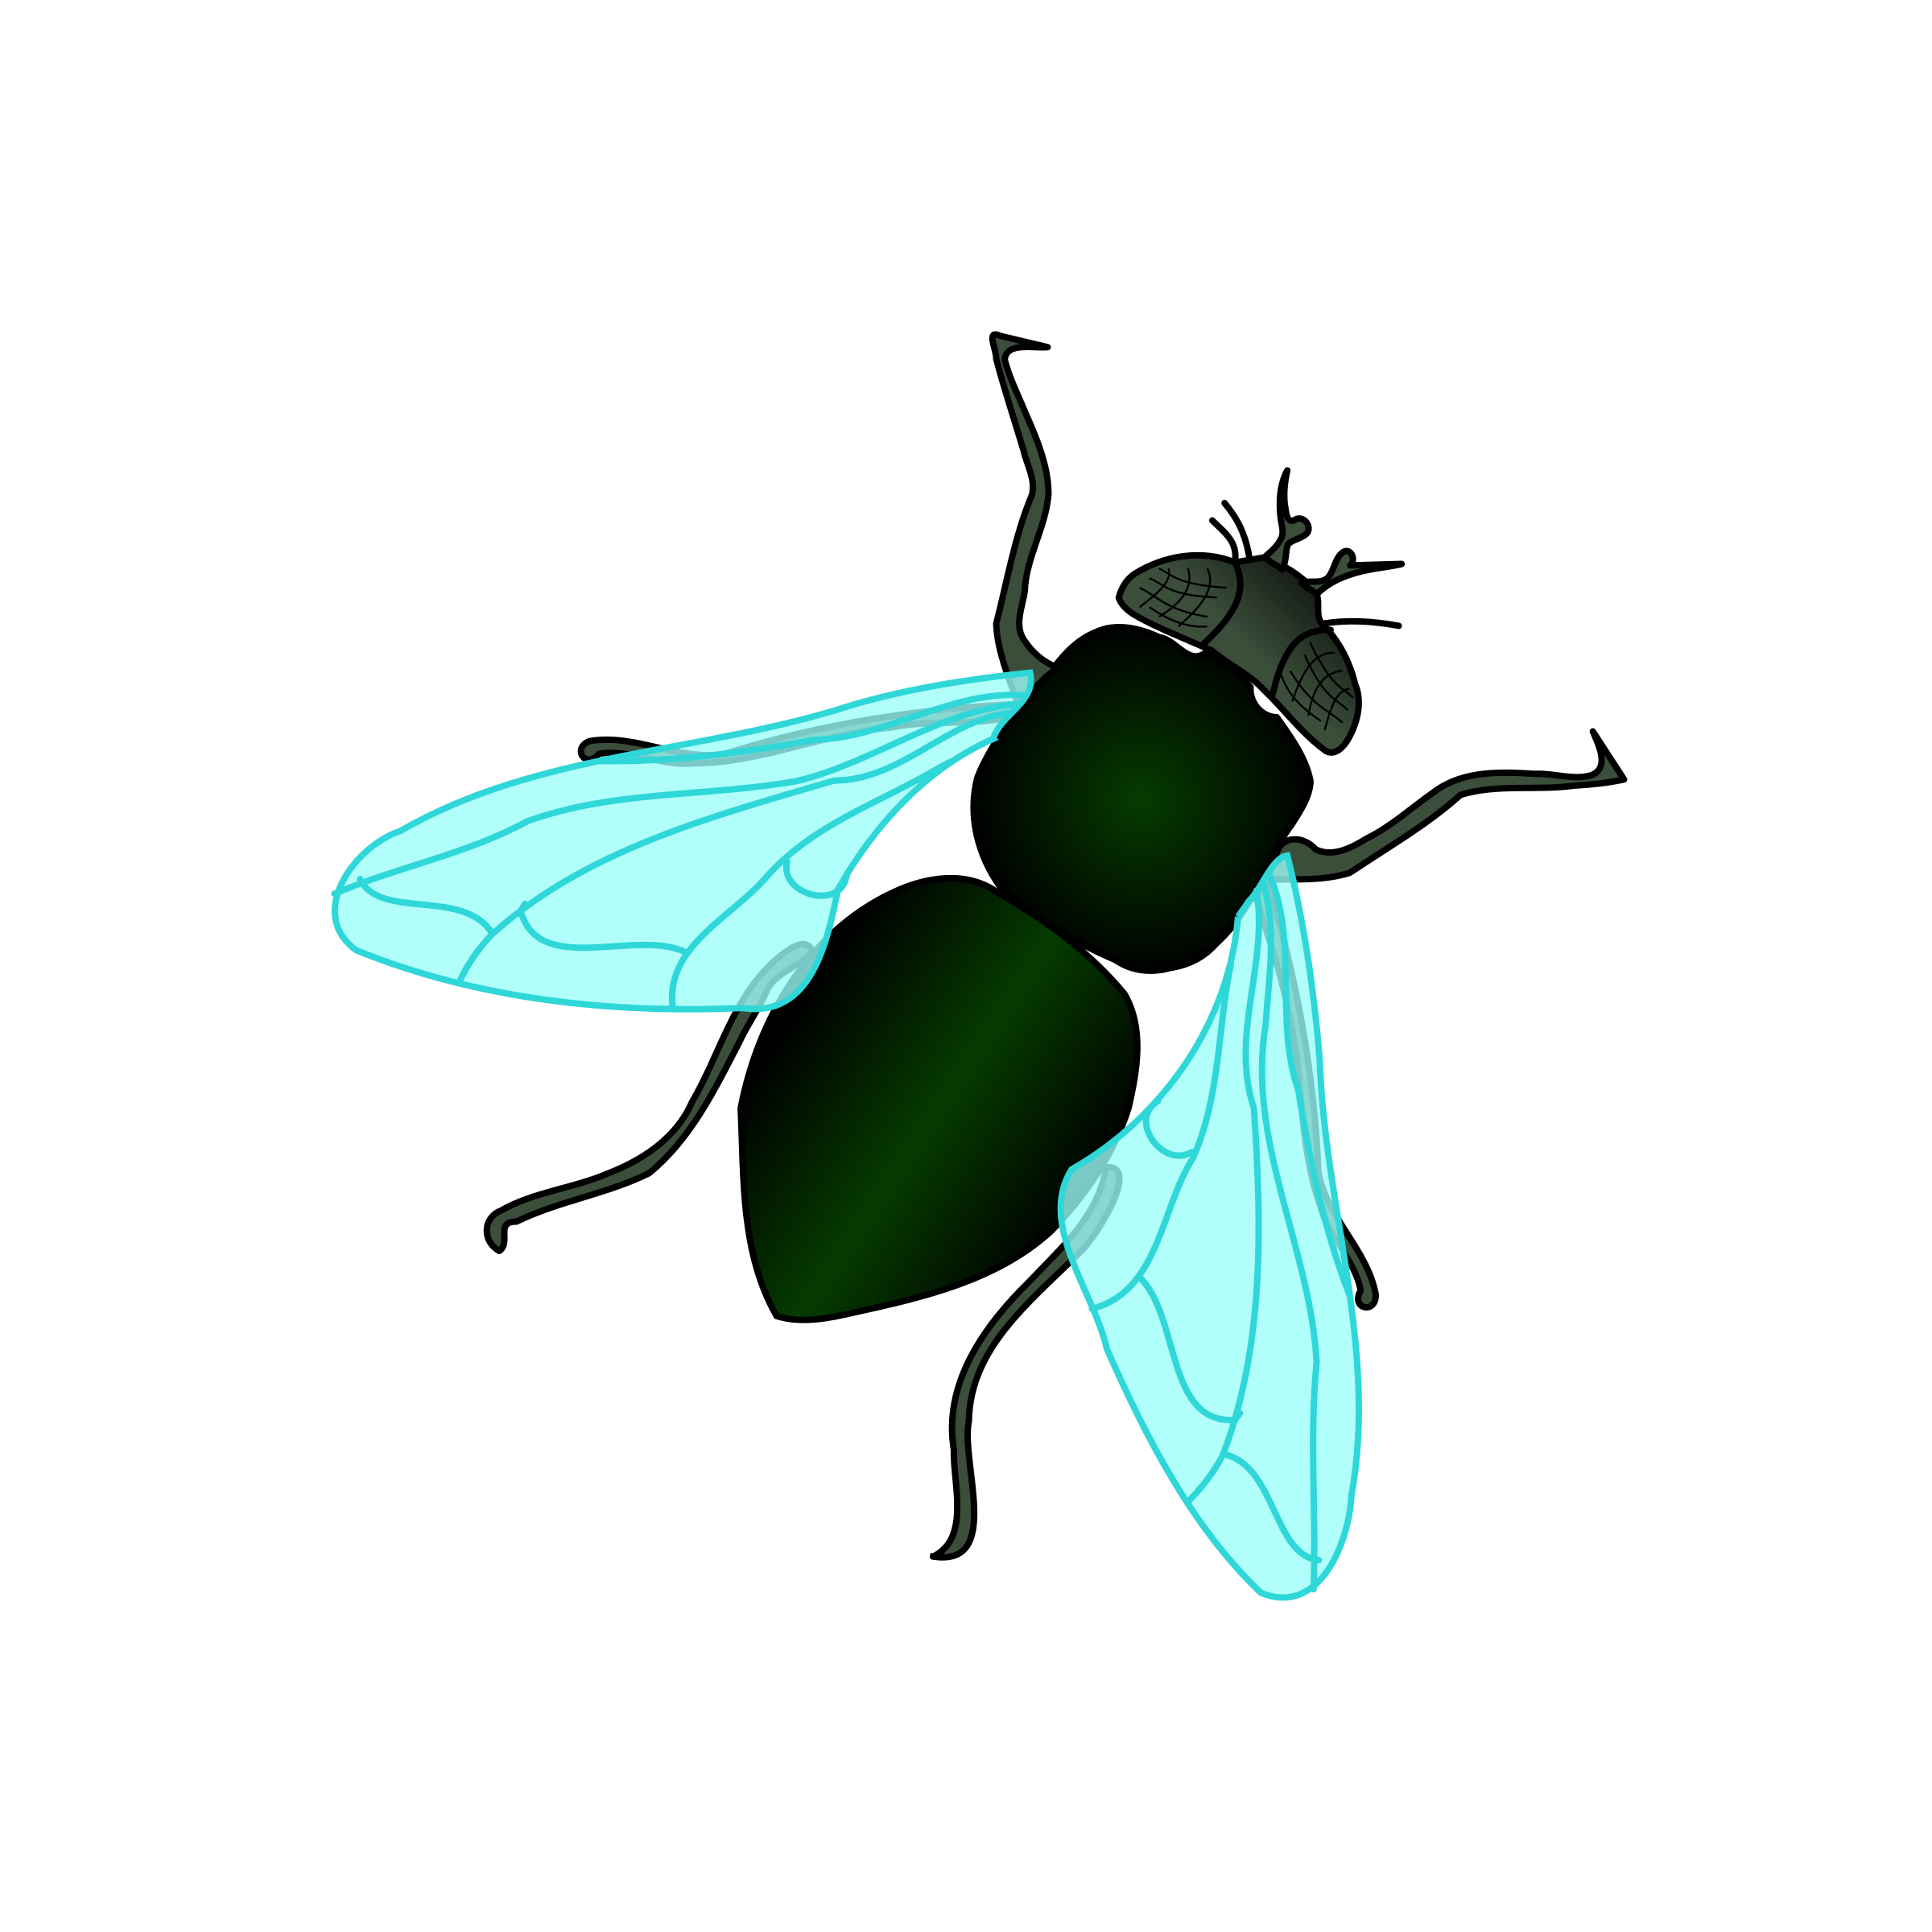 Green House Fly by bnielsen